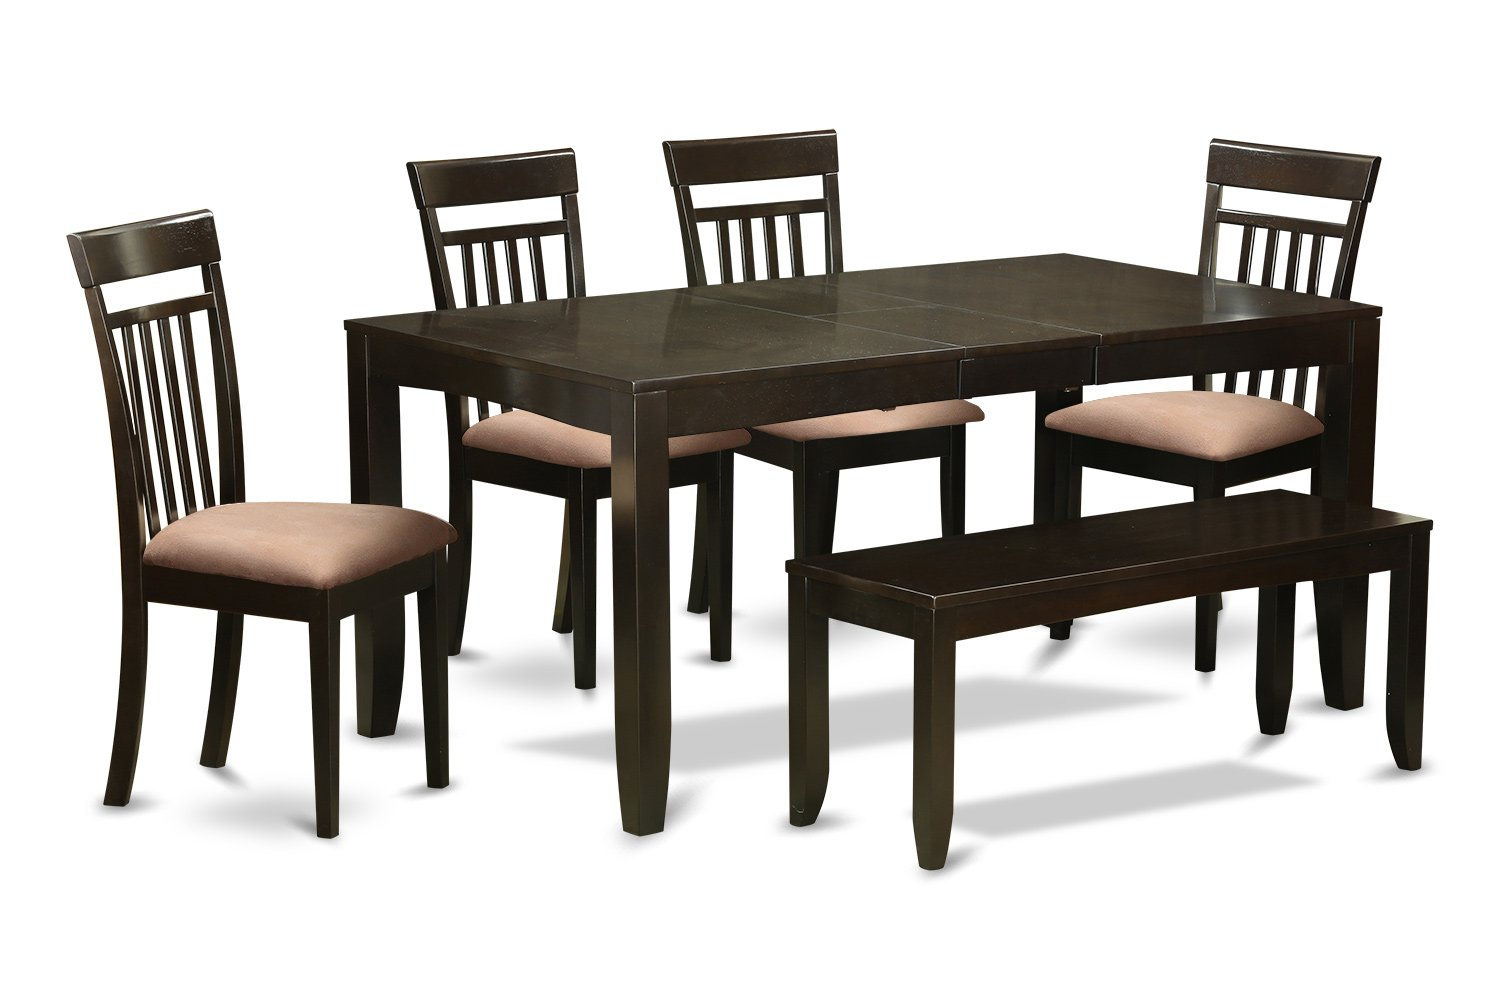 LYCA6-CAP-C 6 Pc Kitchen Table with bench-Kitchen Tables with Leaf and 4 Kitchen Dining Chairs plus Bench